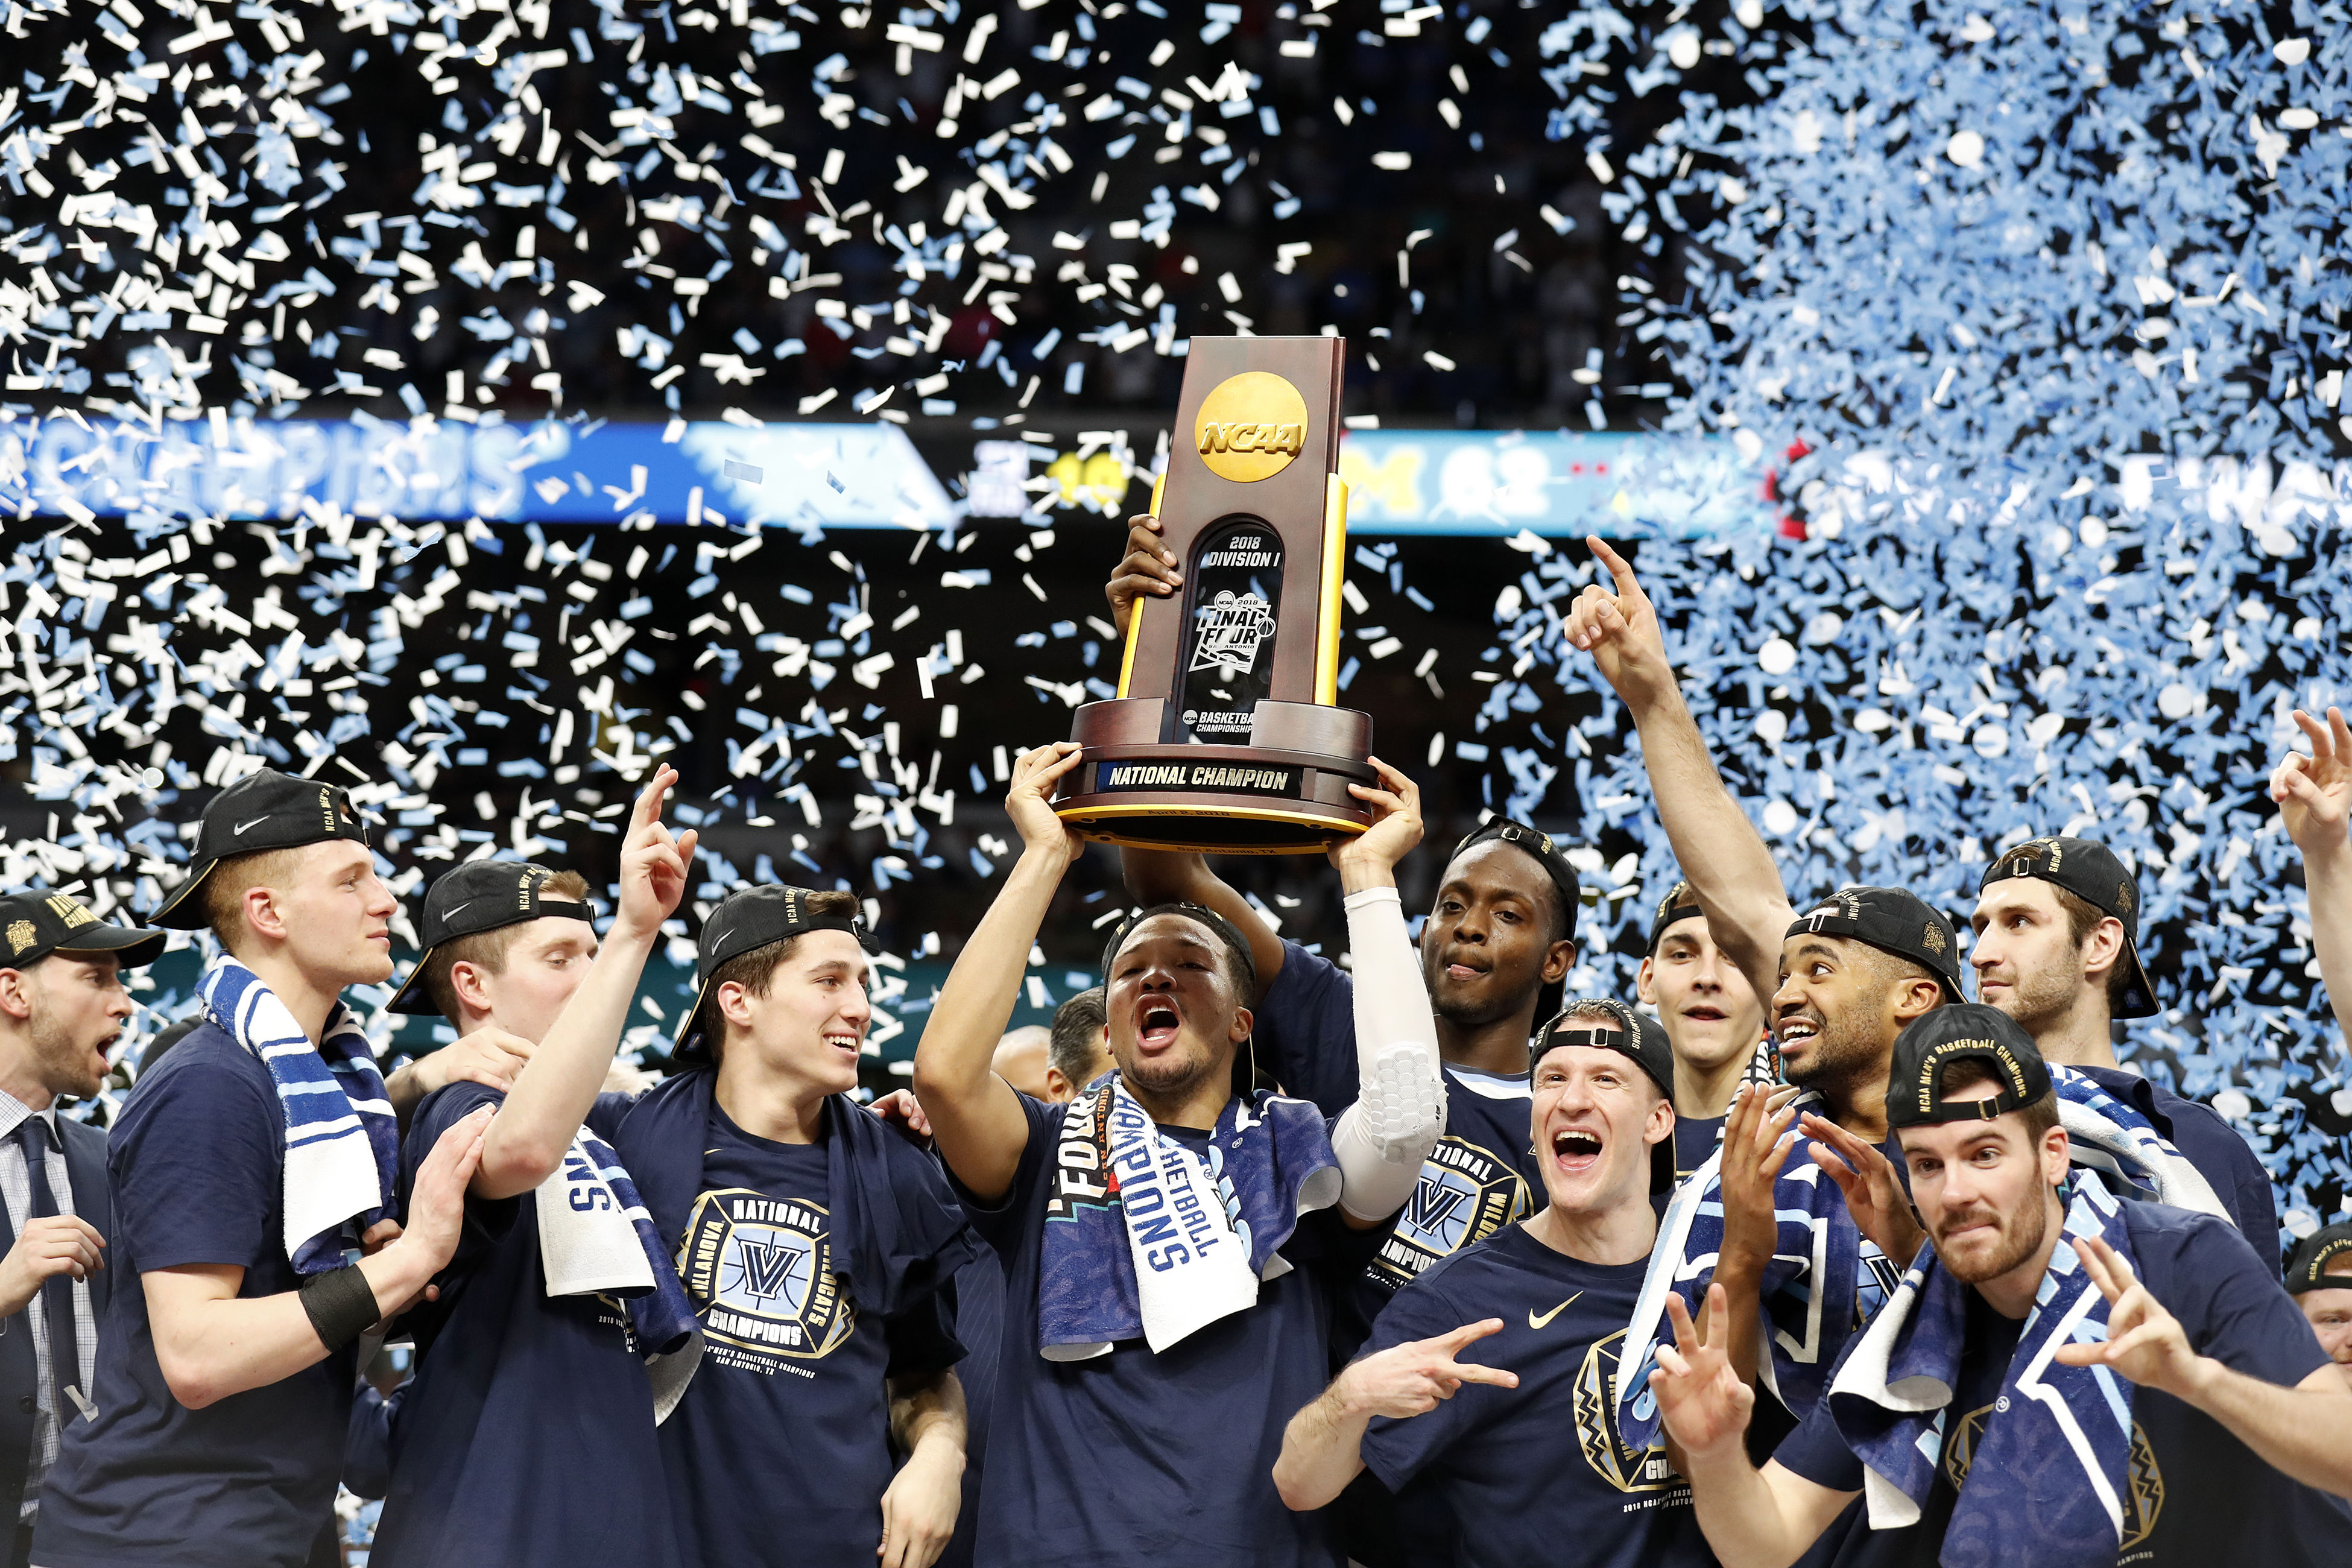 April 2, 2018 - San Antonio, TEXAS, USA - The Villanova Wildcats celebrate after their NCAA Division I Men's National Championship Basketball game against the Michigan Wolverines held Monday April 2, 2018 at the Alamodome. Villanova Wildcats won 79-62. (Credit Image: © Edward A. Ornelas/San Antonio Express-News via ZUMA Wire)